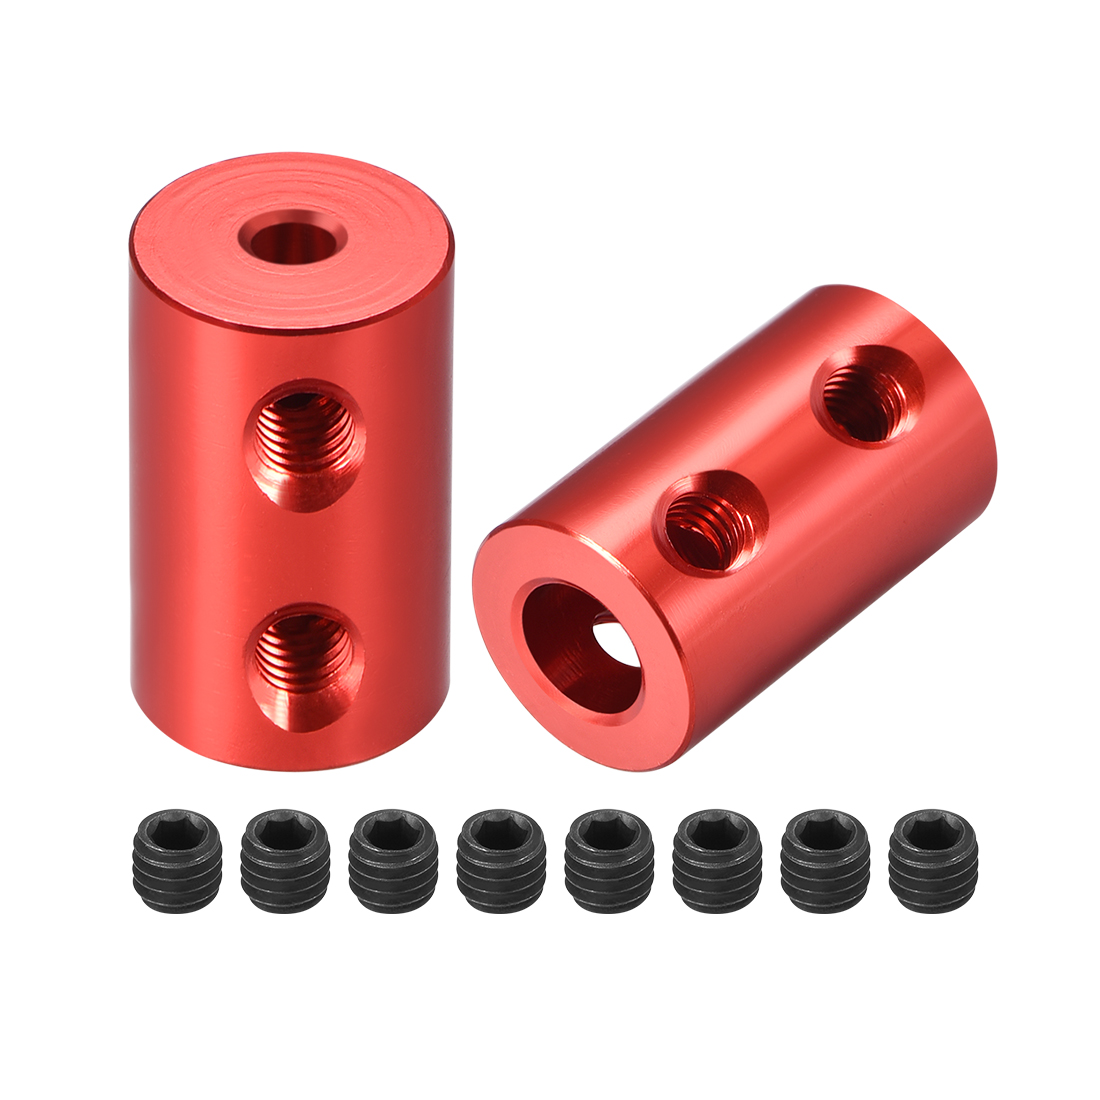 Shaft Coupling 3mm to 6mm Bore L20xD12 Robot Motor Wheel Rigid Coupler Red 2 Pcs